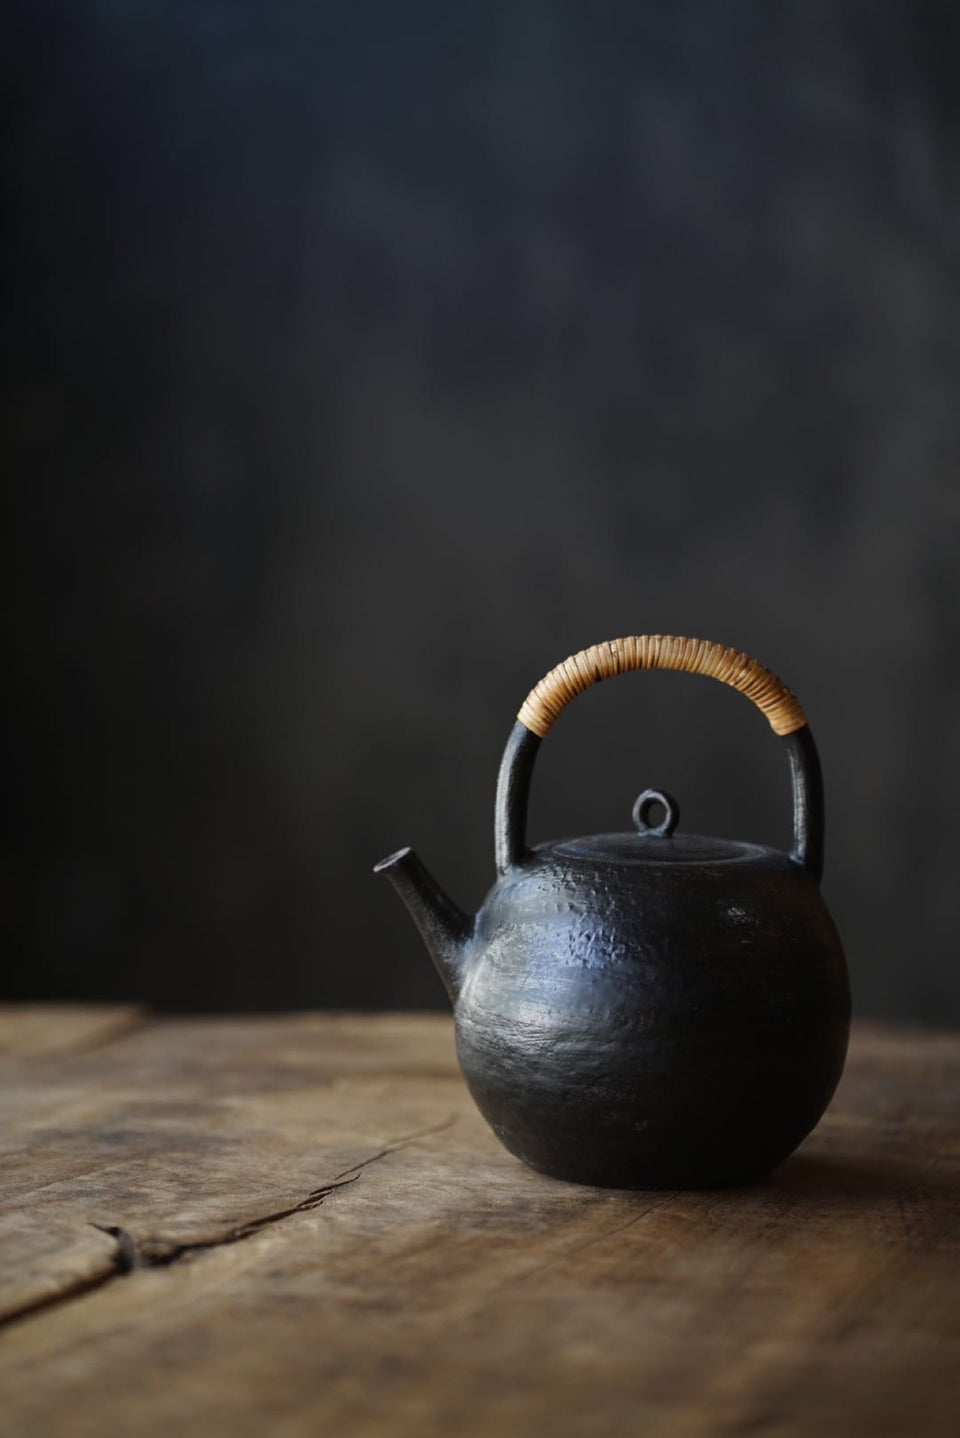 Long-Necked Kettle With Bamboo Skin Handle